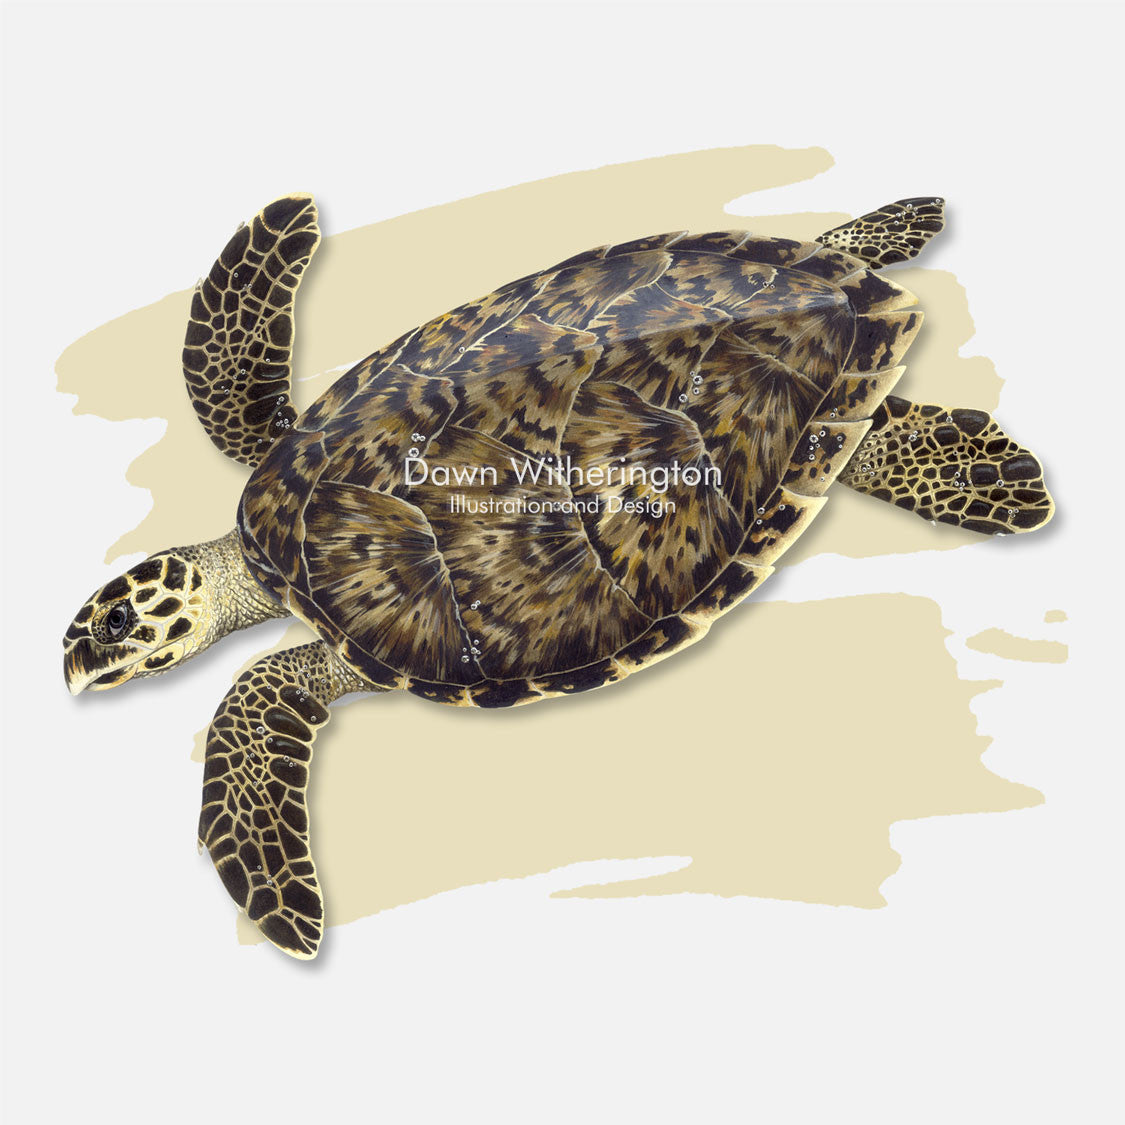 This beautiful illustration is of a hawksbill sea turtle, Eretmochelys imbricata, over a swash graphic.